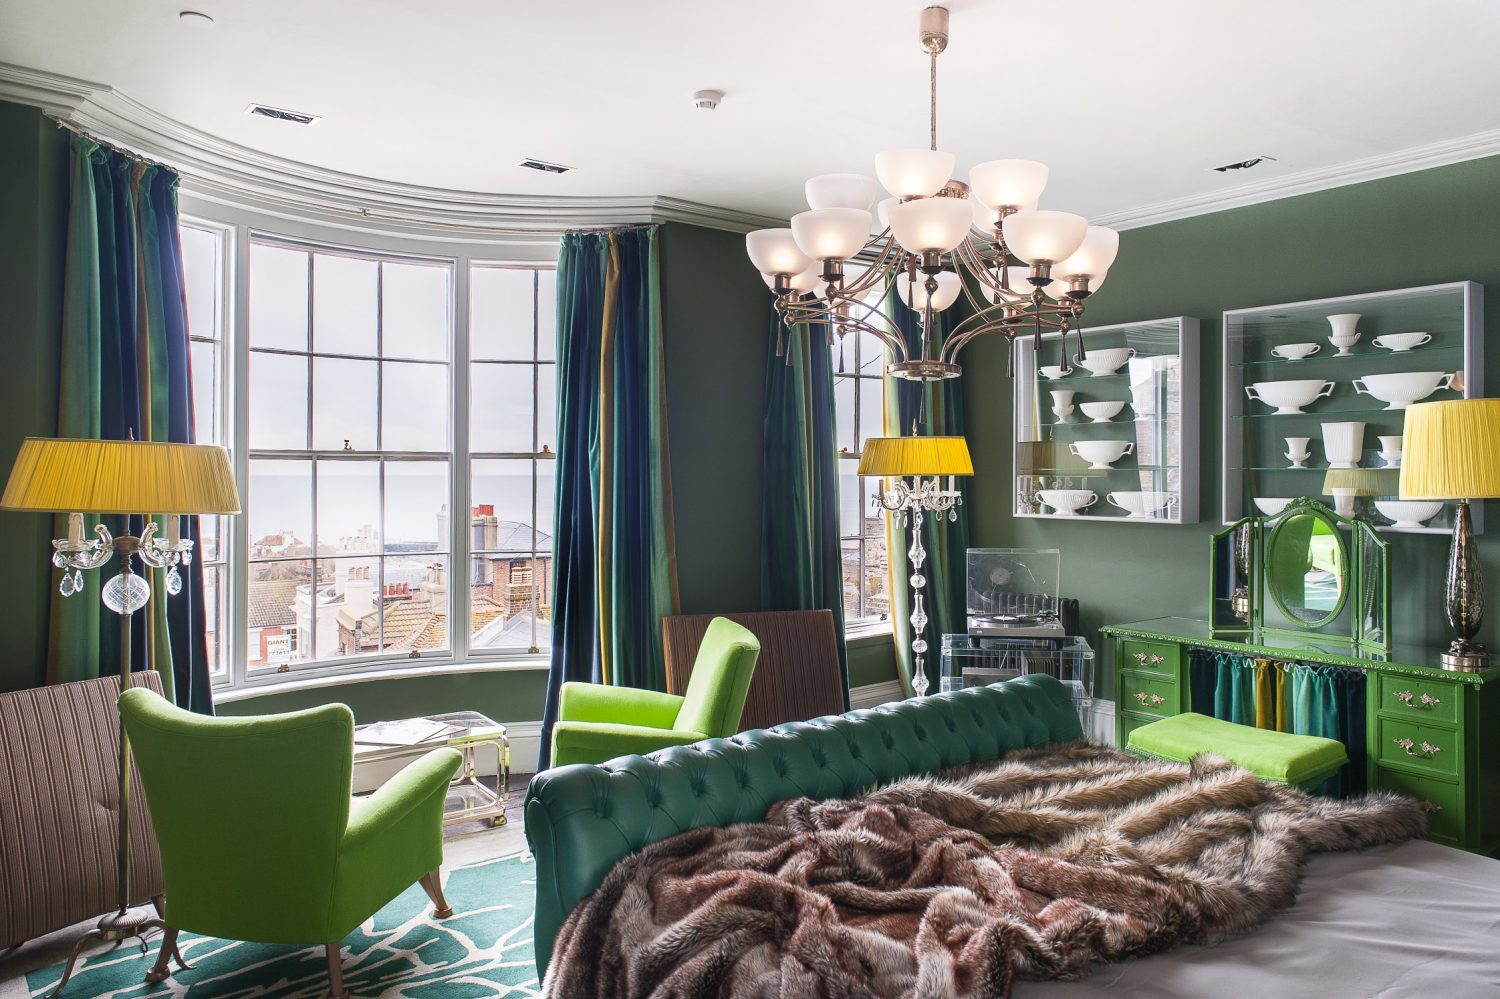 The stunning Admiral Suite is an eye-popping tableau of green fabulousness, encompassing the bespoke emerald green leather chesterfield bed frame, two Kelly green armchairs, the walls and a Louis Fooey dressing table and bedside tables painted in demi-gloss Kelly.